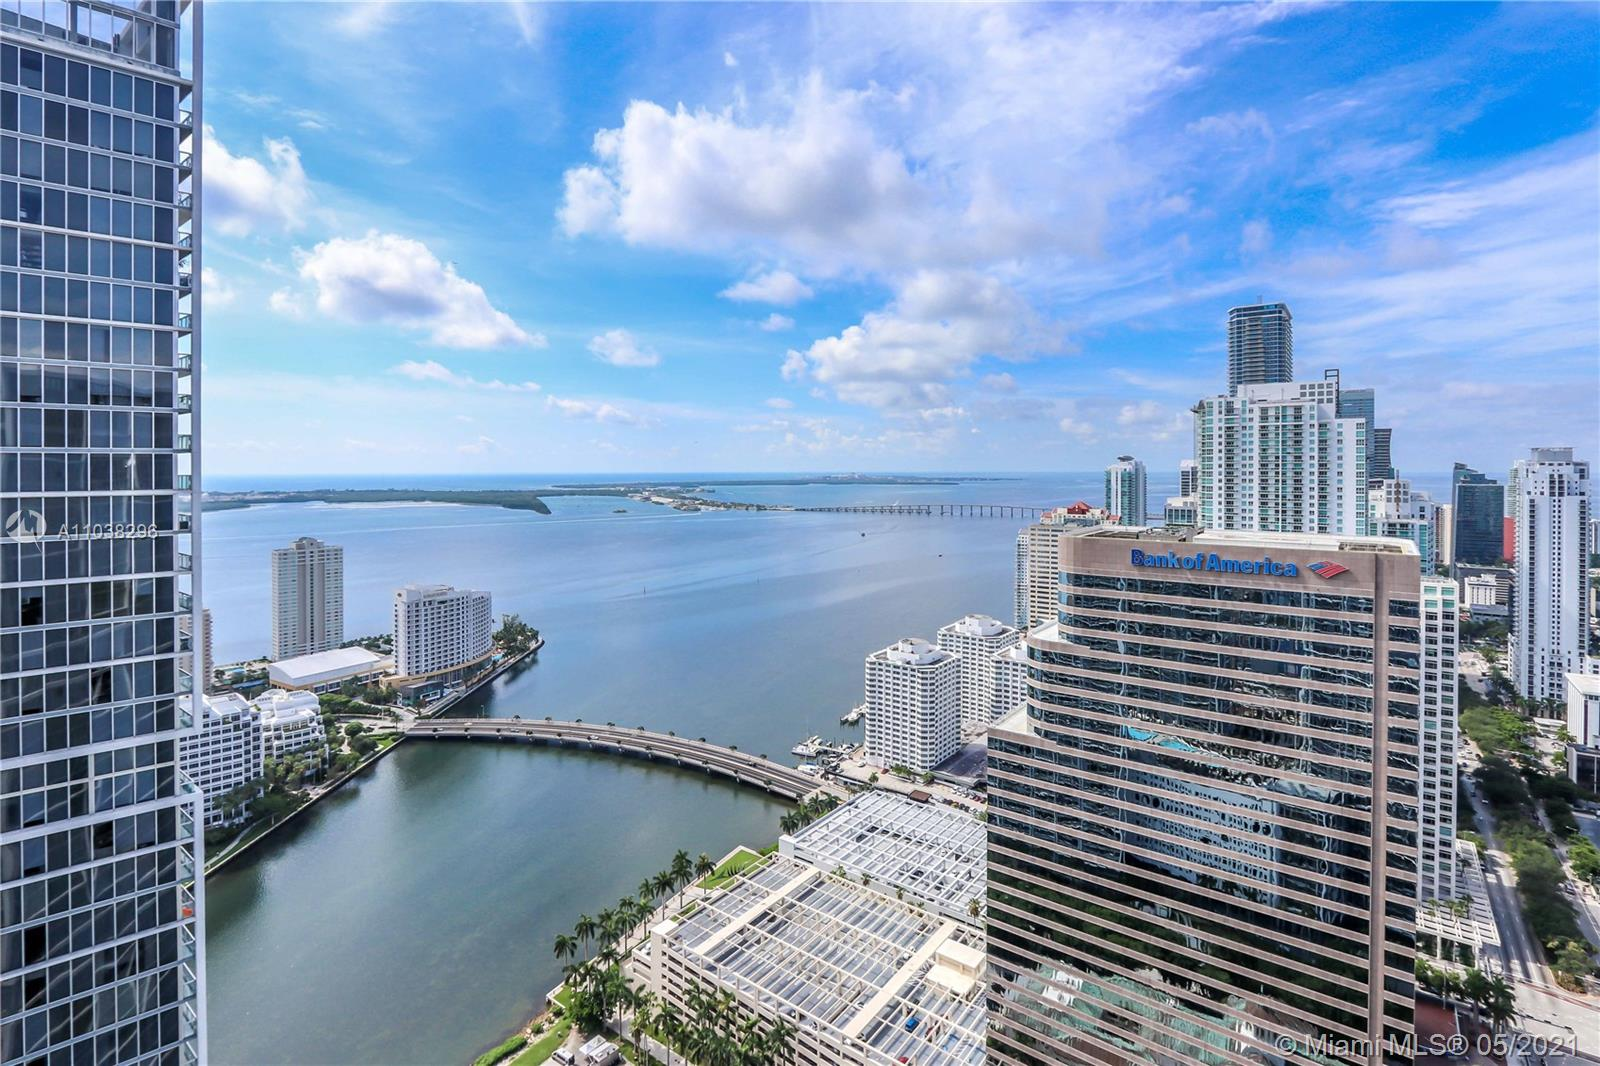 Fully furnished 1 bedroom, 1 bath + den unit with spectacular views of the bay and skyline. Great amenities Icon has to offer. State of the art pool, spa, party room, 4 in-house famous restaurants and more. Walking distance to Brickell City Centre, Bayside, Mary Brickell Village, 15 minutes from the airport and Miami Beach. 5 minutes from Key Biscayne. Must see!!